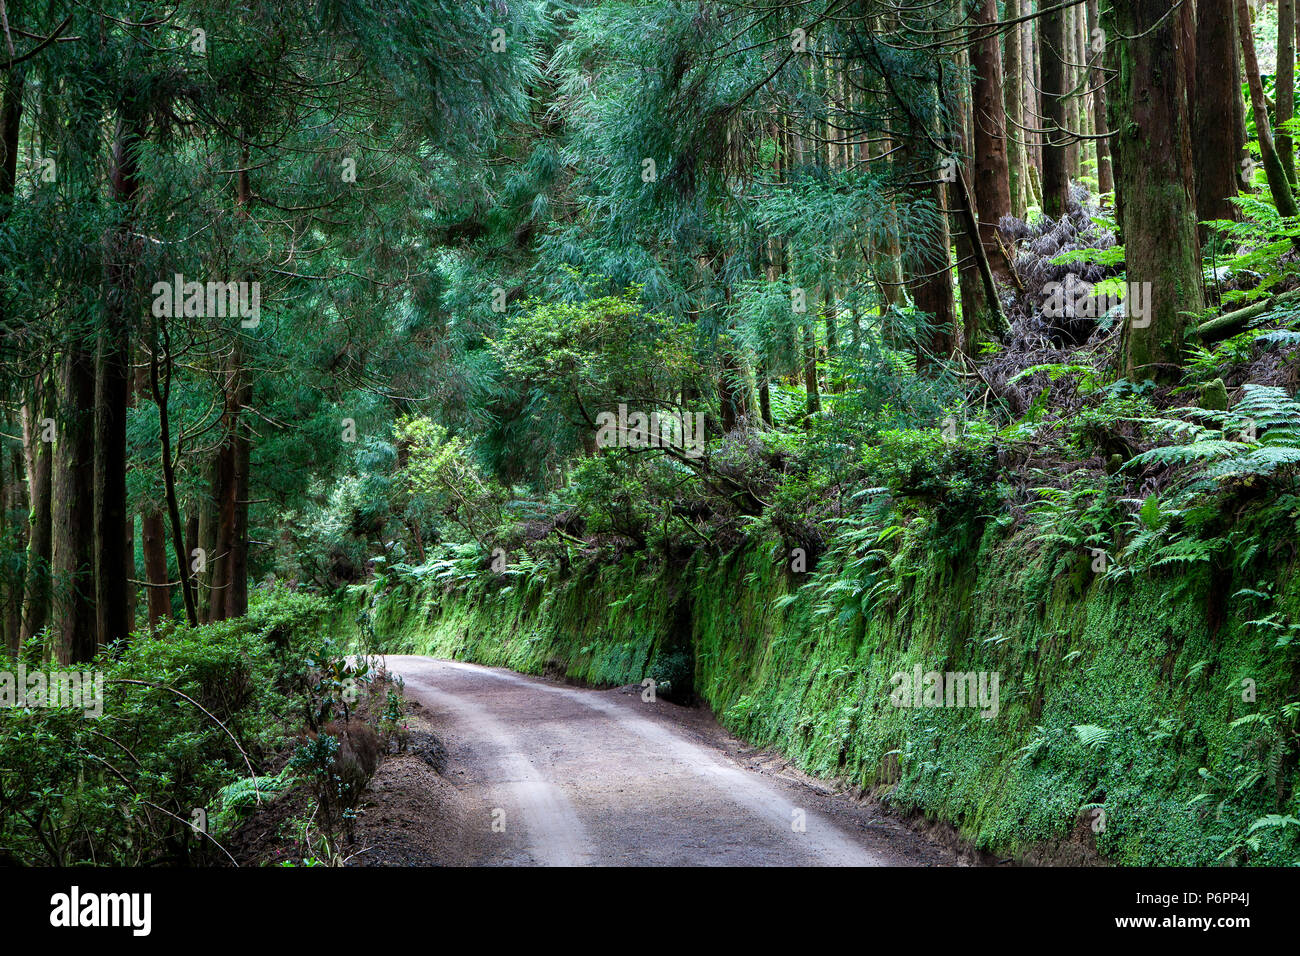 Path through the forest on Sao Miguel island, Azores, Portugal - Stock Image